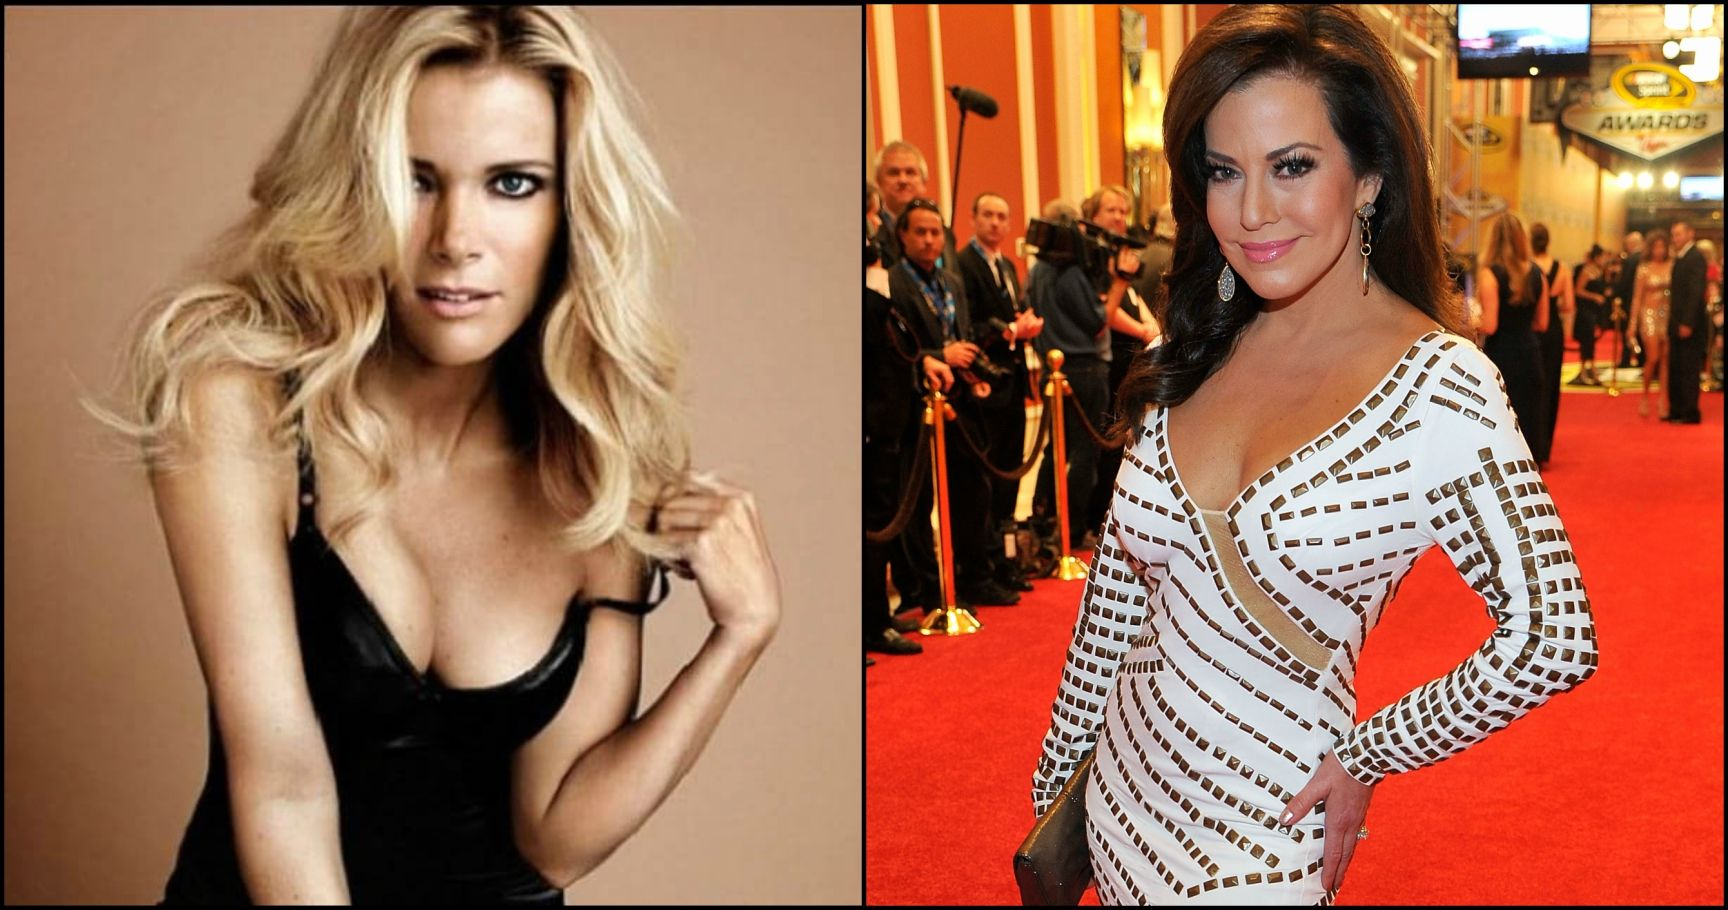 The 20 Most Beautiful News Women in America